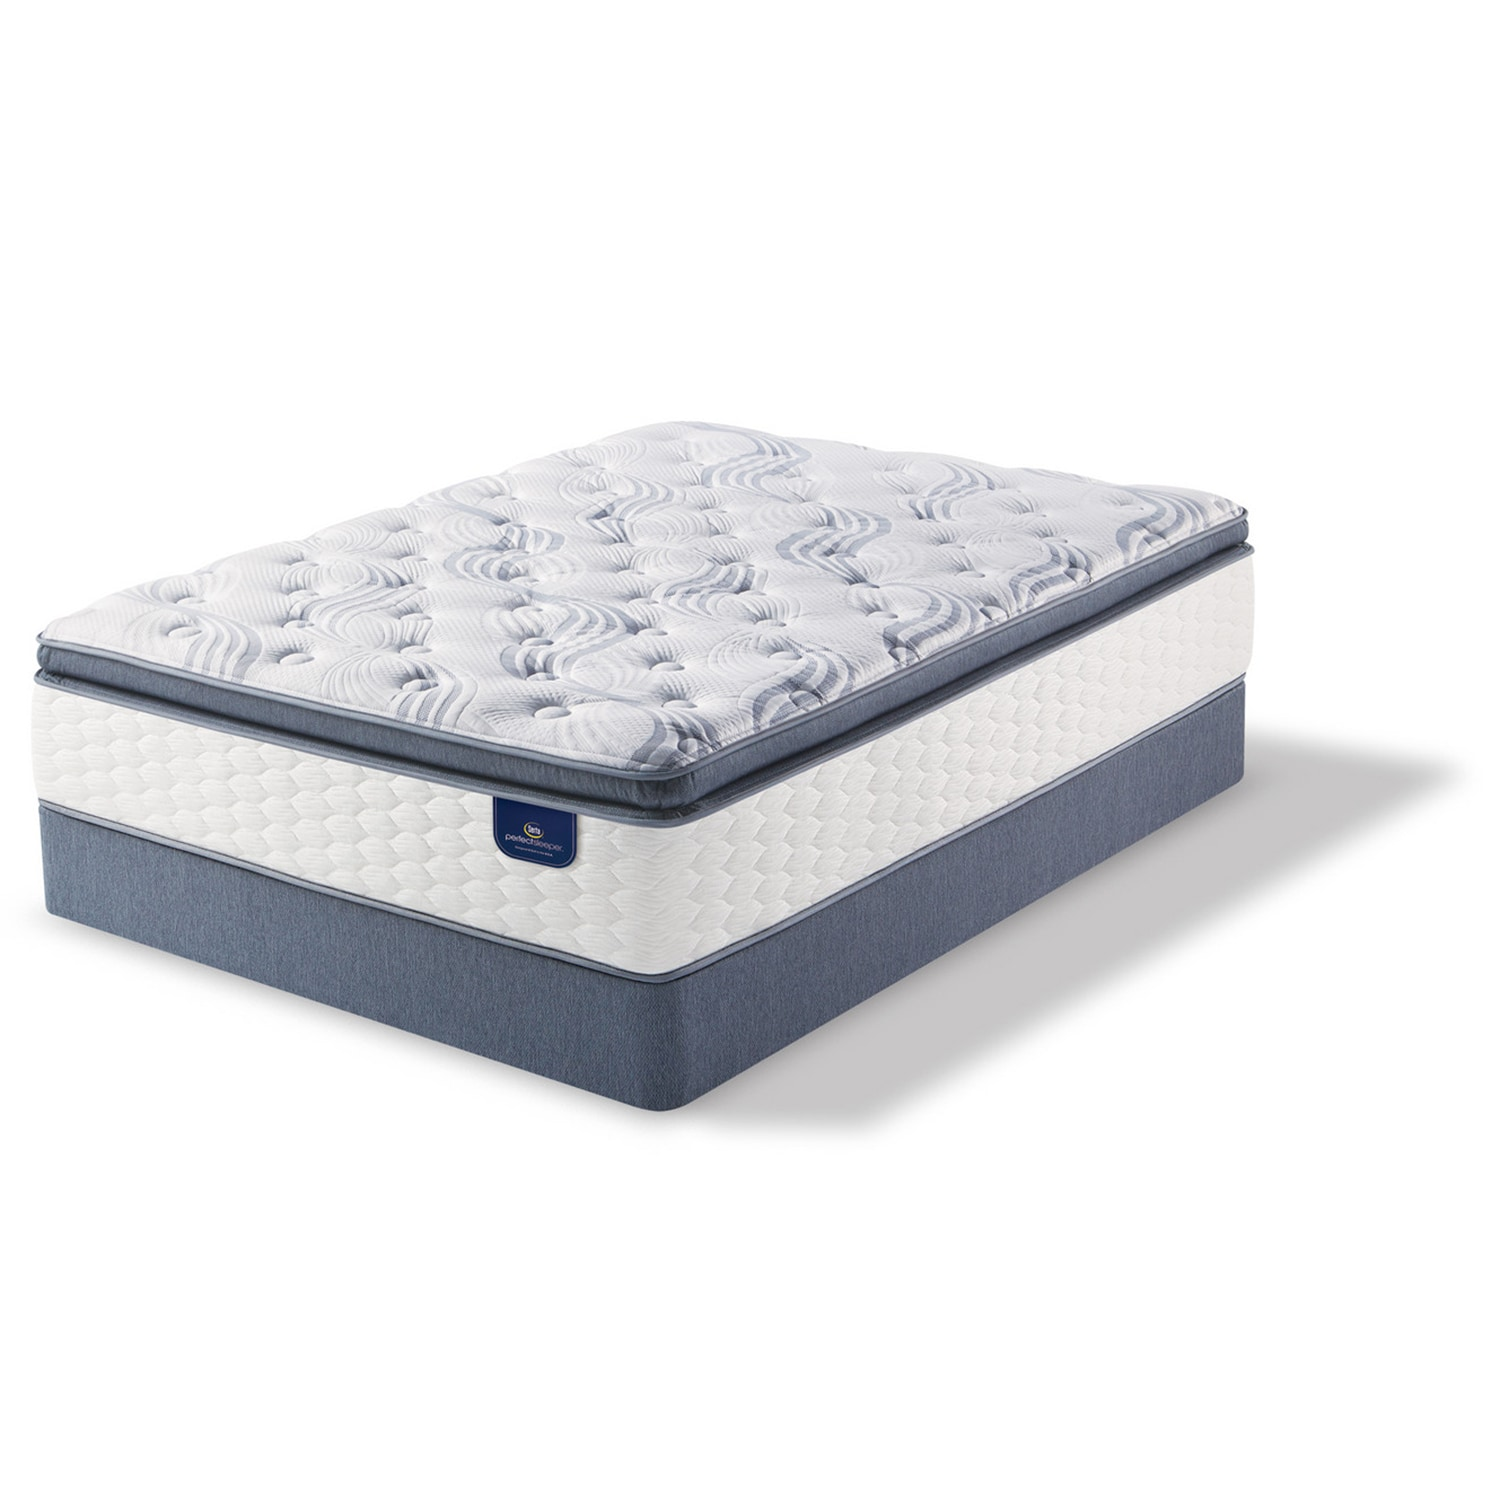 mattress main instant pillow foam memory and sleepinnovations sleep top next product topper innovations ipt fiber